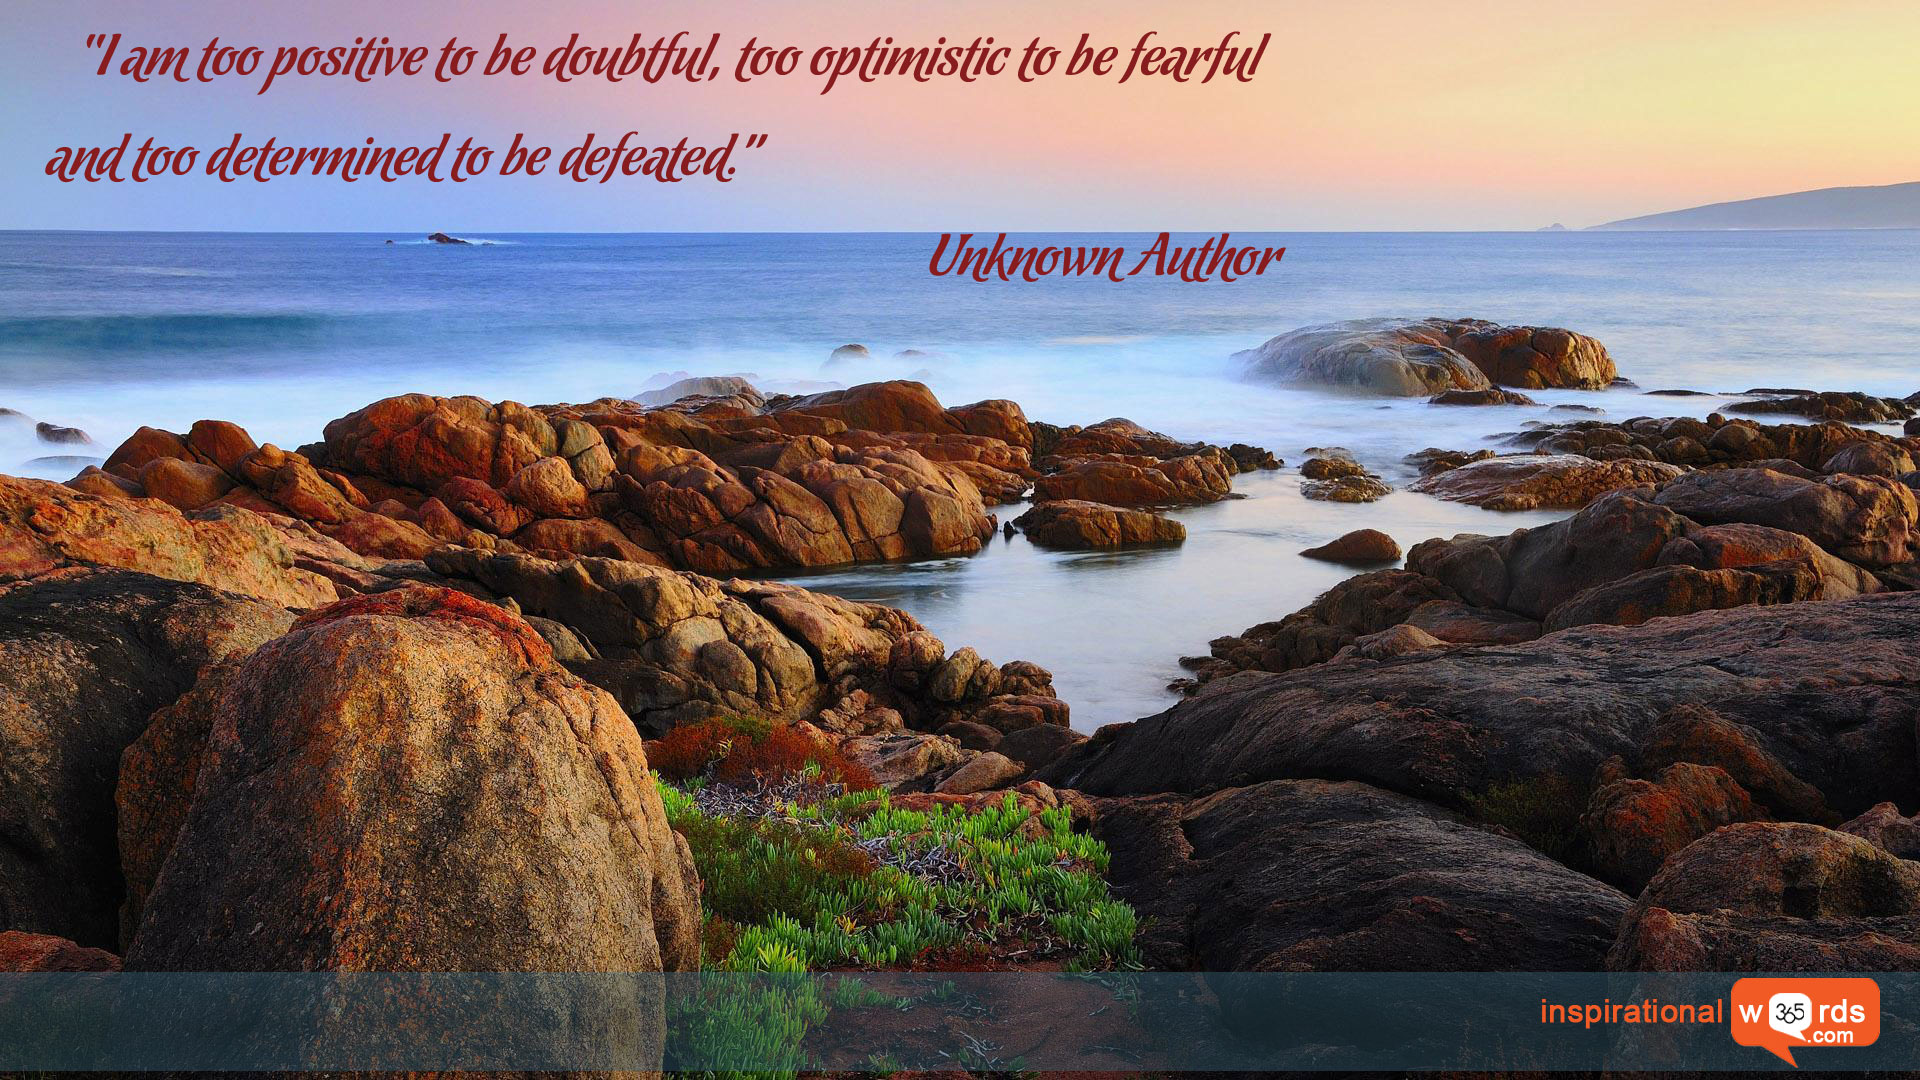 Inspirational Wallpaper Quote. Unknown Author